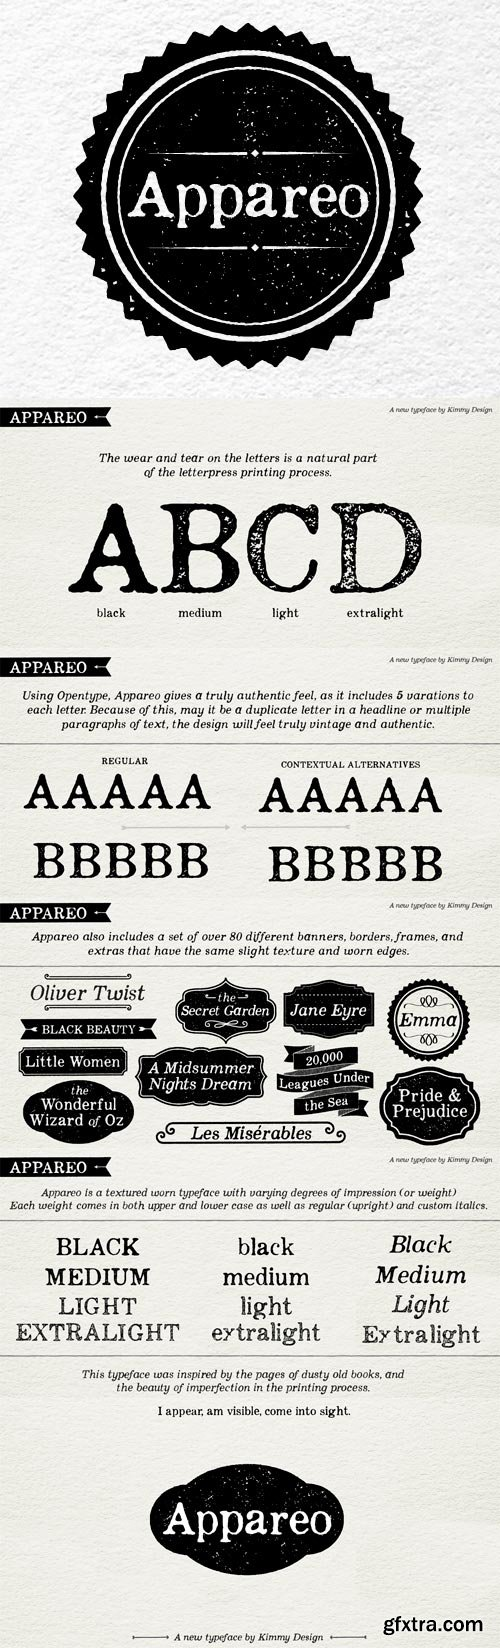 Appareo Font Family - 9 Fonts for $70